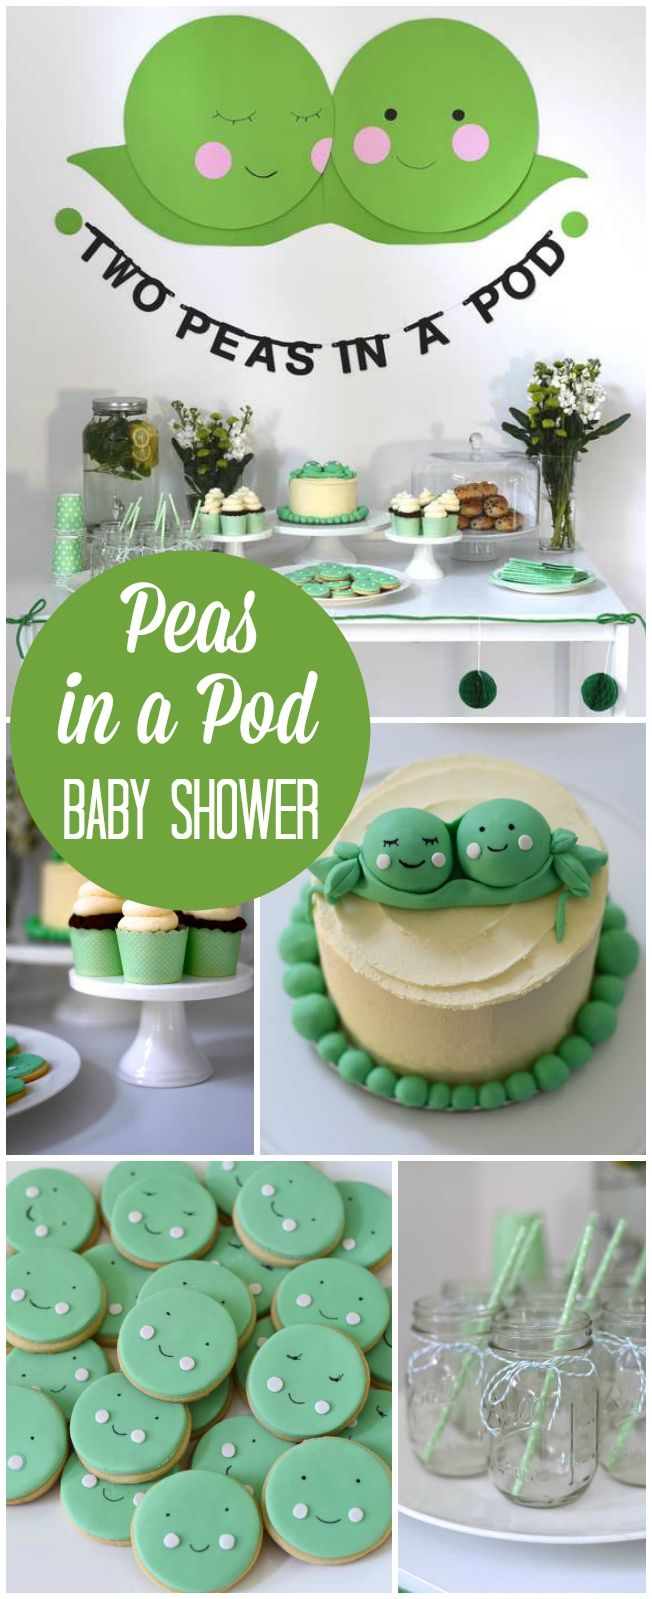 25 best ideas about twin baby showers on pinterest baby for Baby shower decoration ideas for twins